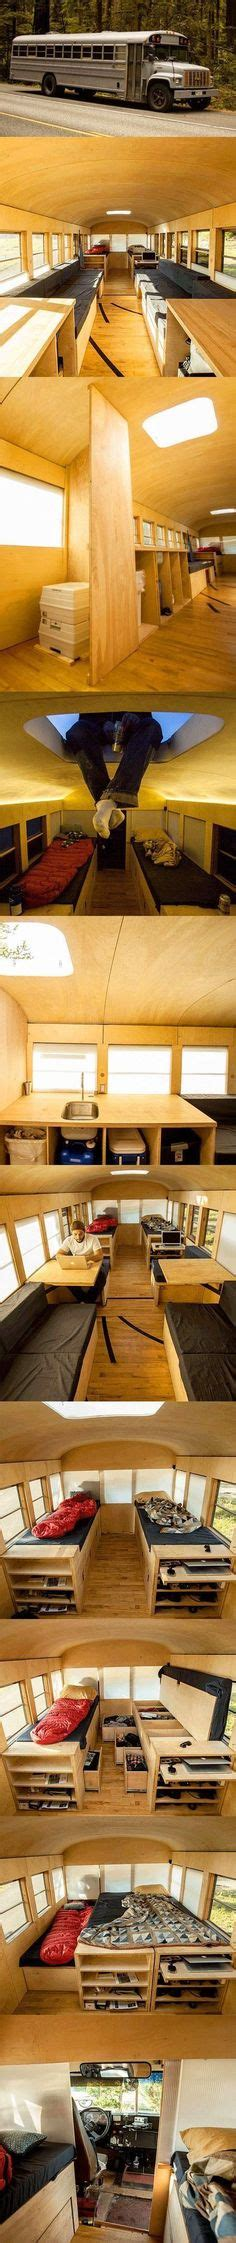 School Converted Into Small Home By Architecture Student by Where To Find The Best Plans To Build A Commercial Quality